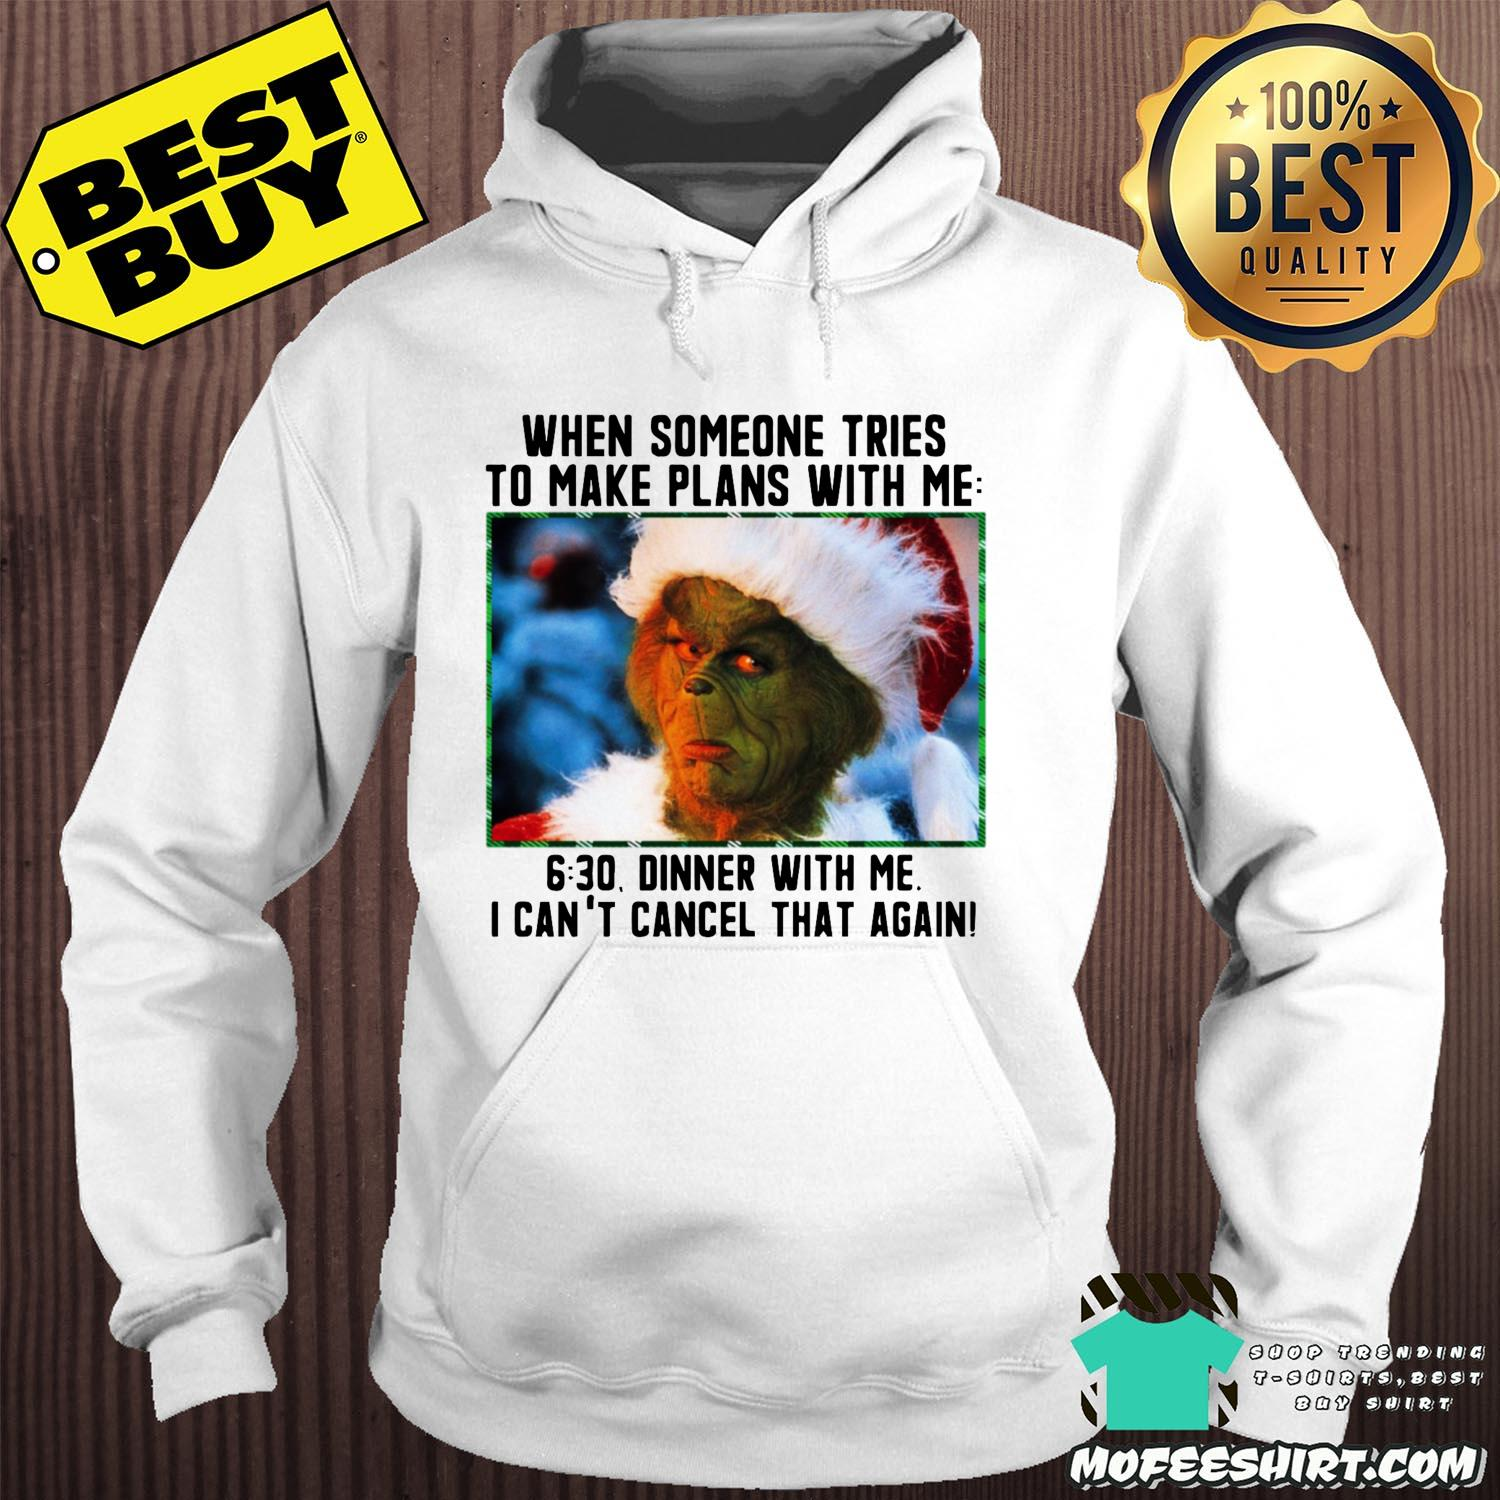 Grinch Merry Christmas When Someone Tries To Make Plans With Me 6:30 Dinner With Me I Can't Cancel That Again Shirt